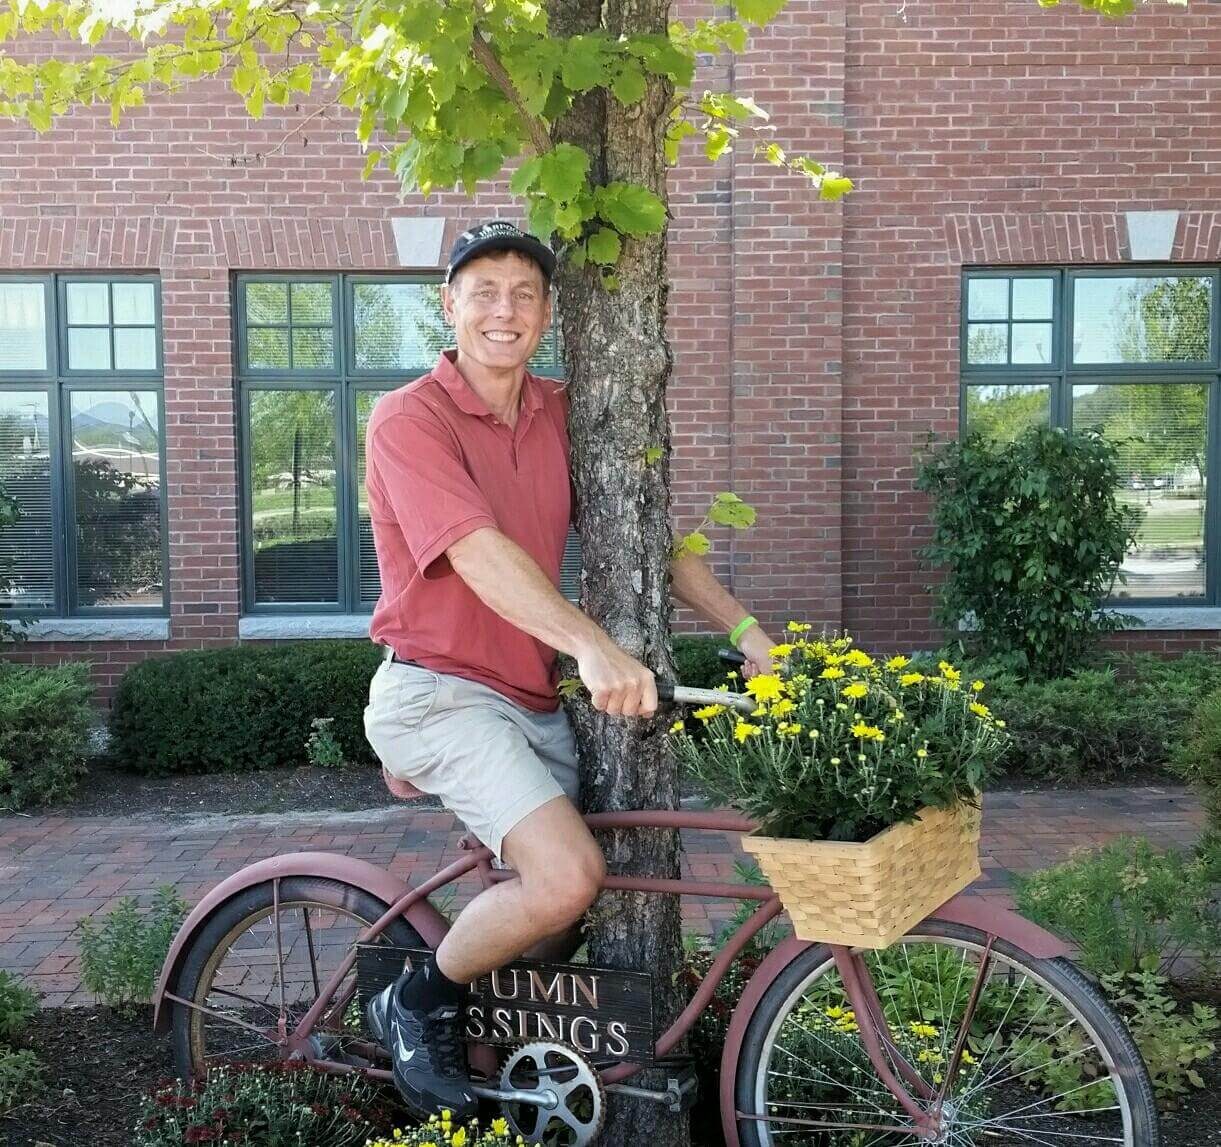 Barry posing on the vintage bicycle decorating the Bethel branch